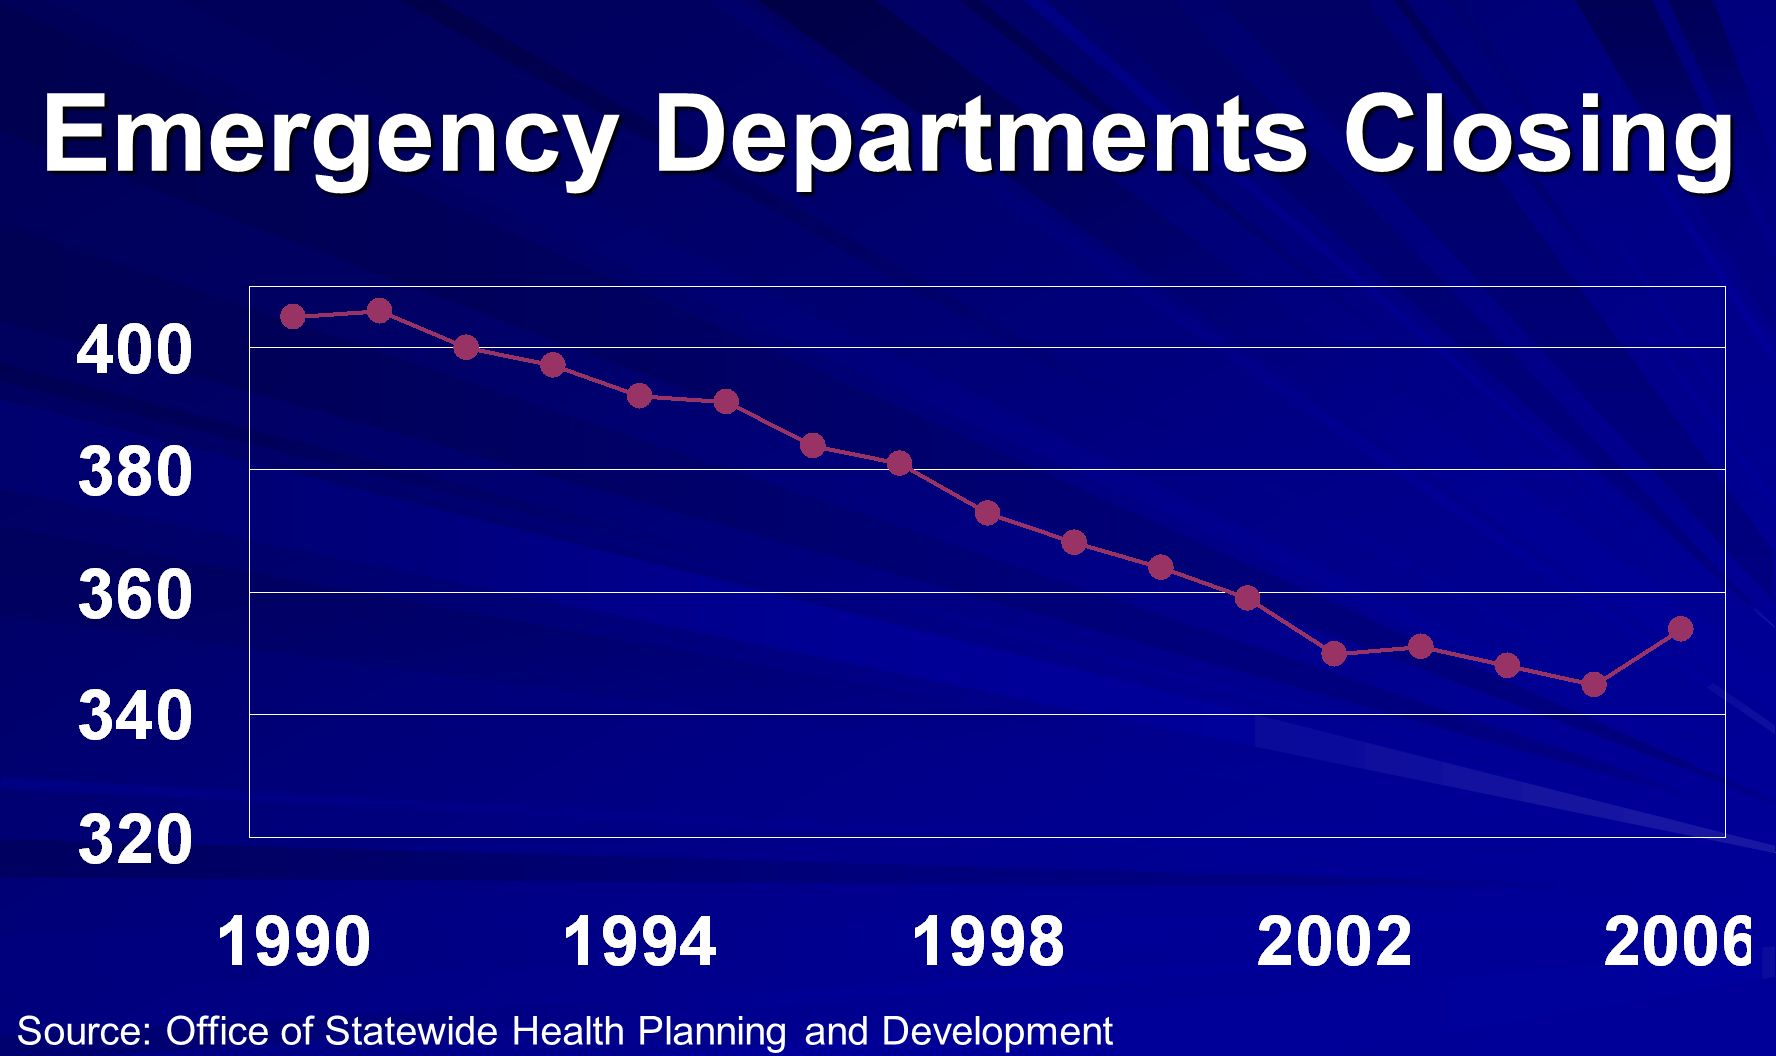 Emergency Departments Closing Source: Office of Statewide Health Planning and Development